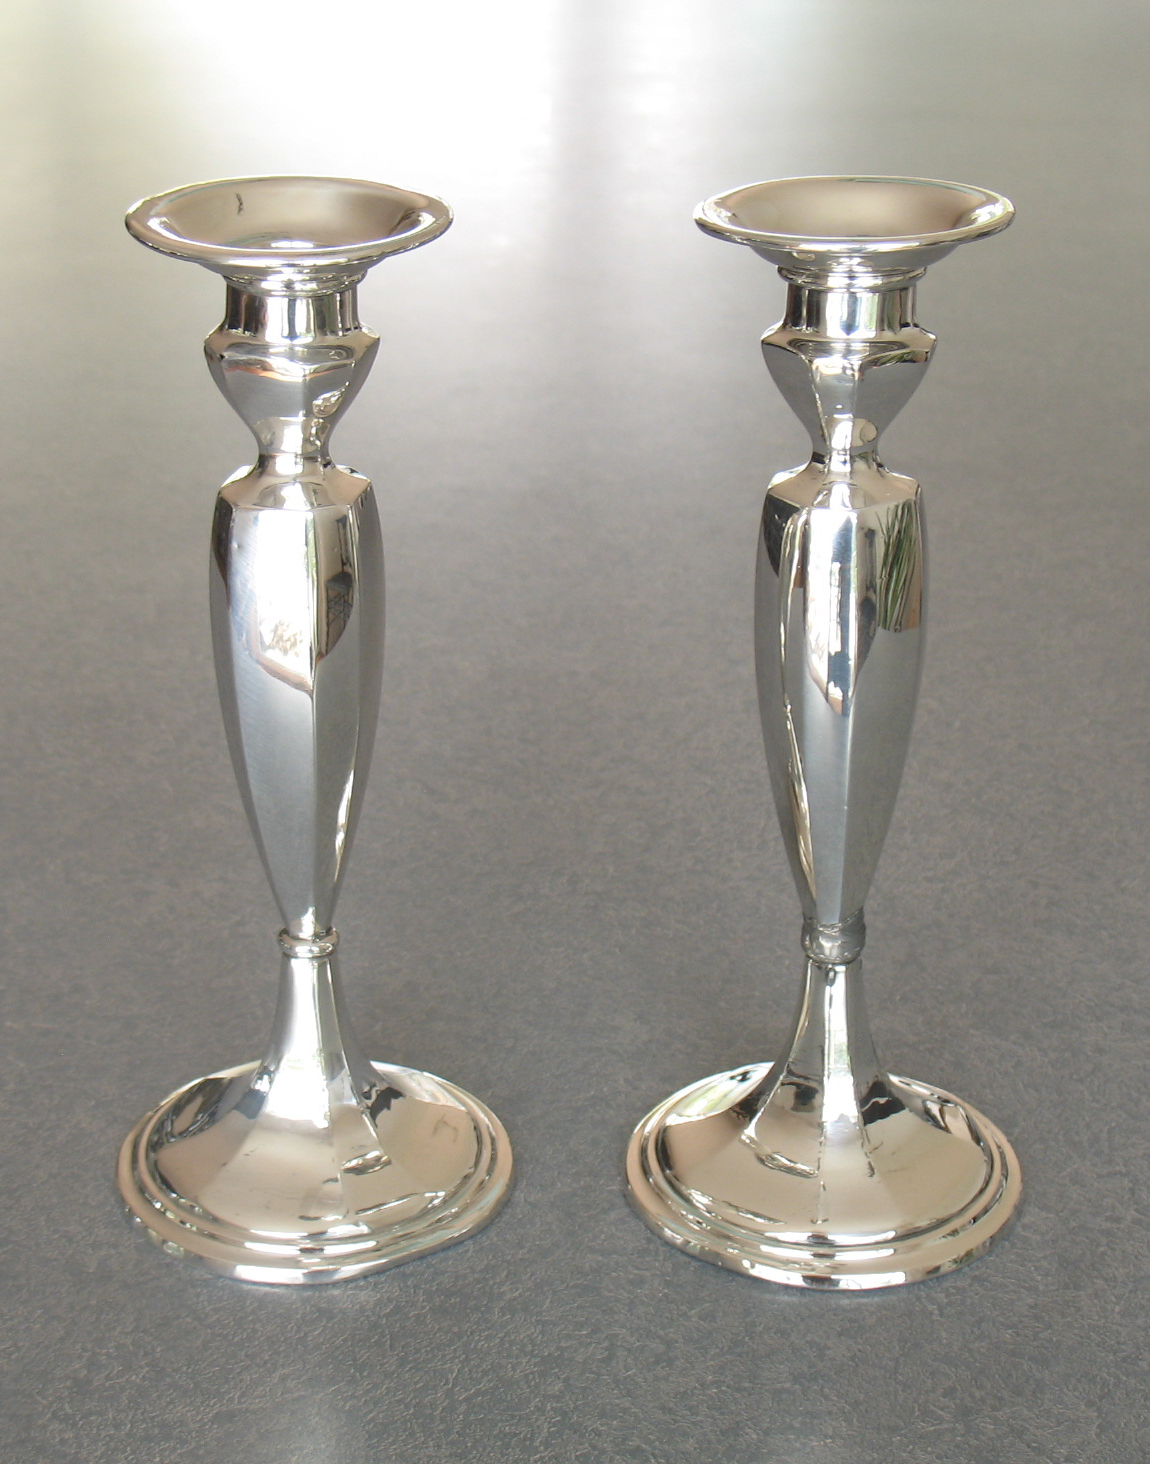 crooked-sterling-silver-candlesticks-repaired-polished.jpg